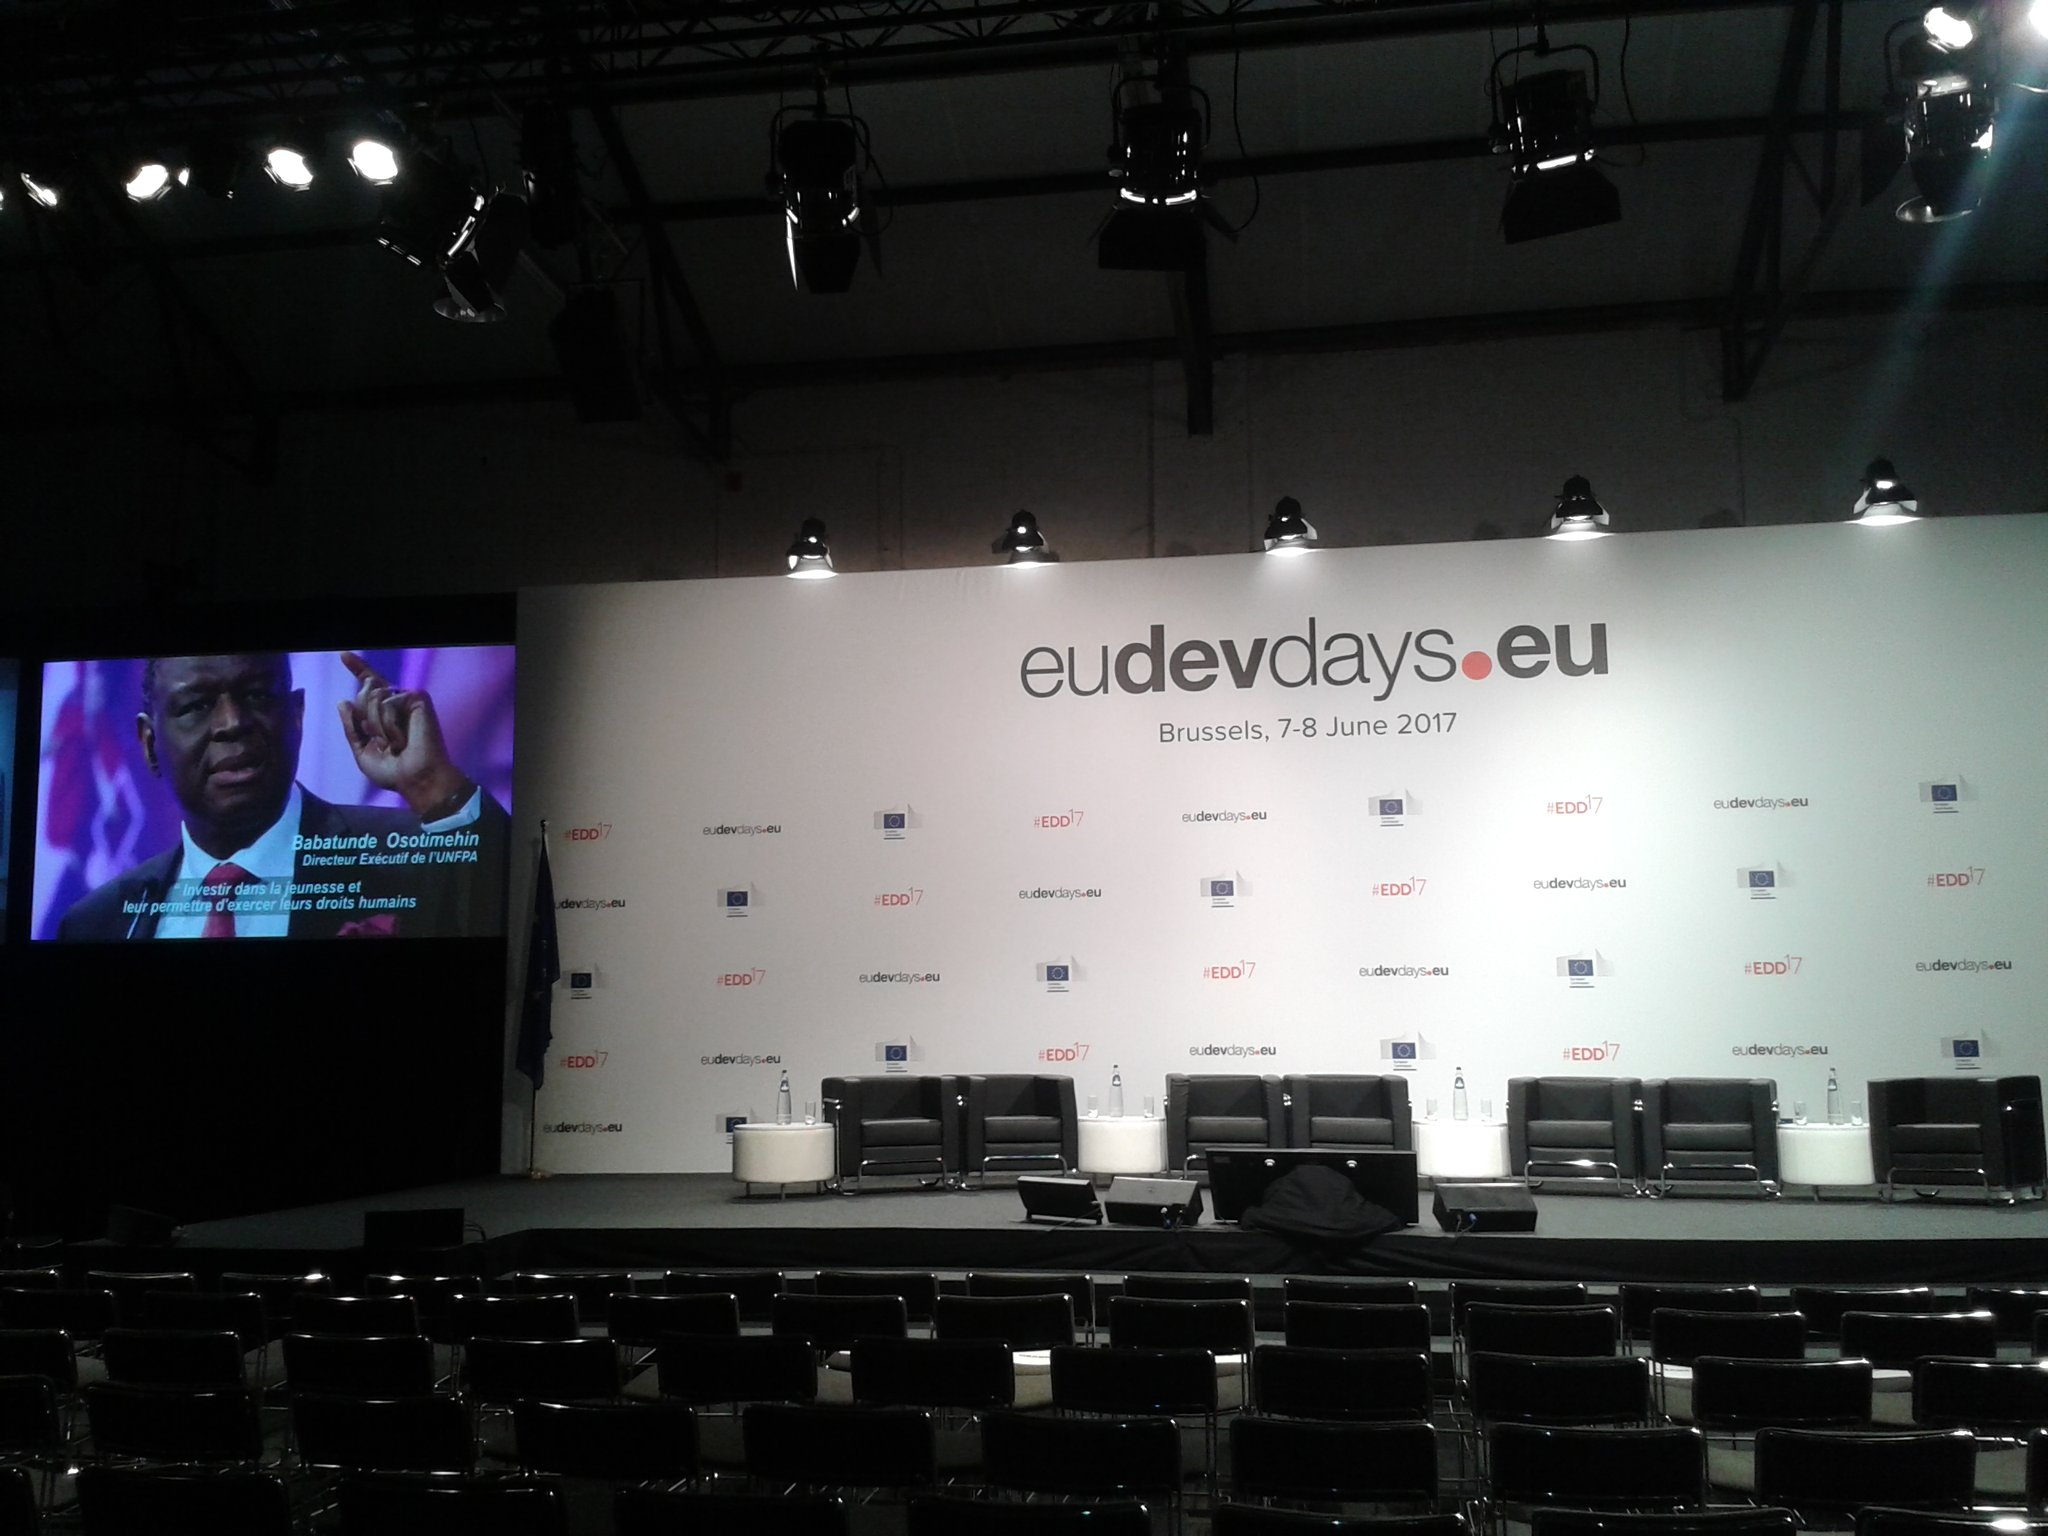 Our panel at #EDD17 starts with honouring the legacy of @BabatundeUNFPA as champion for empowerment of women & girls https://t.co/gGImlVXIlg